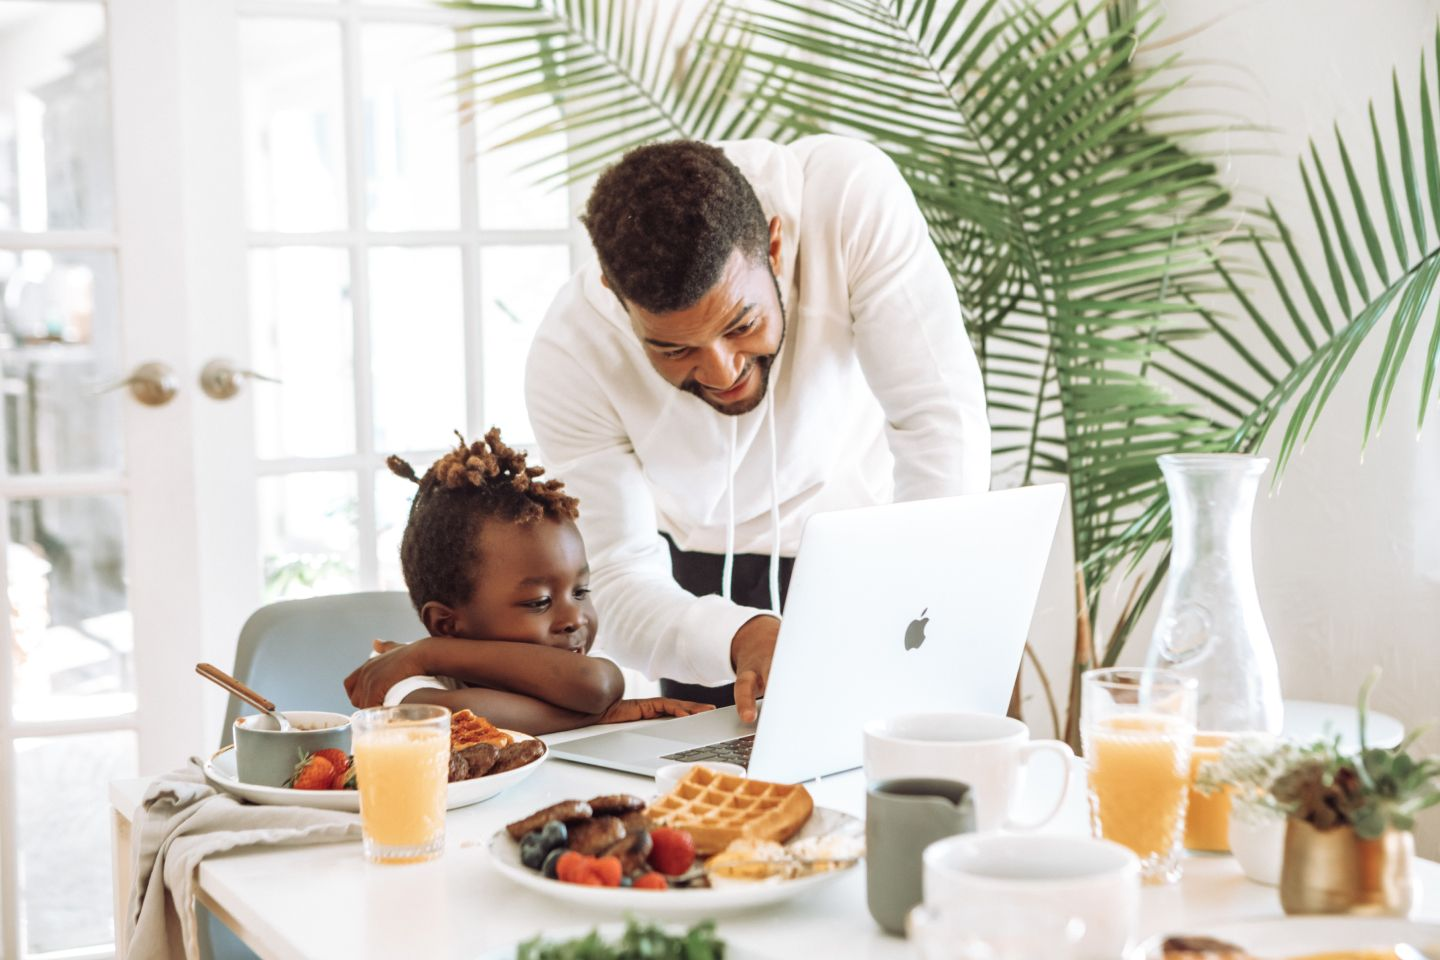 How to to manage your freelance business, when you become a parent